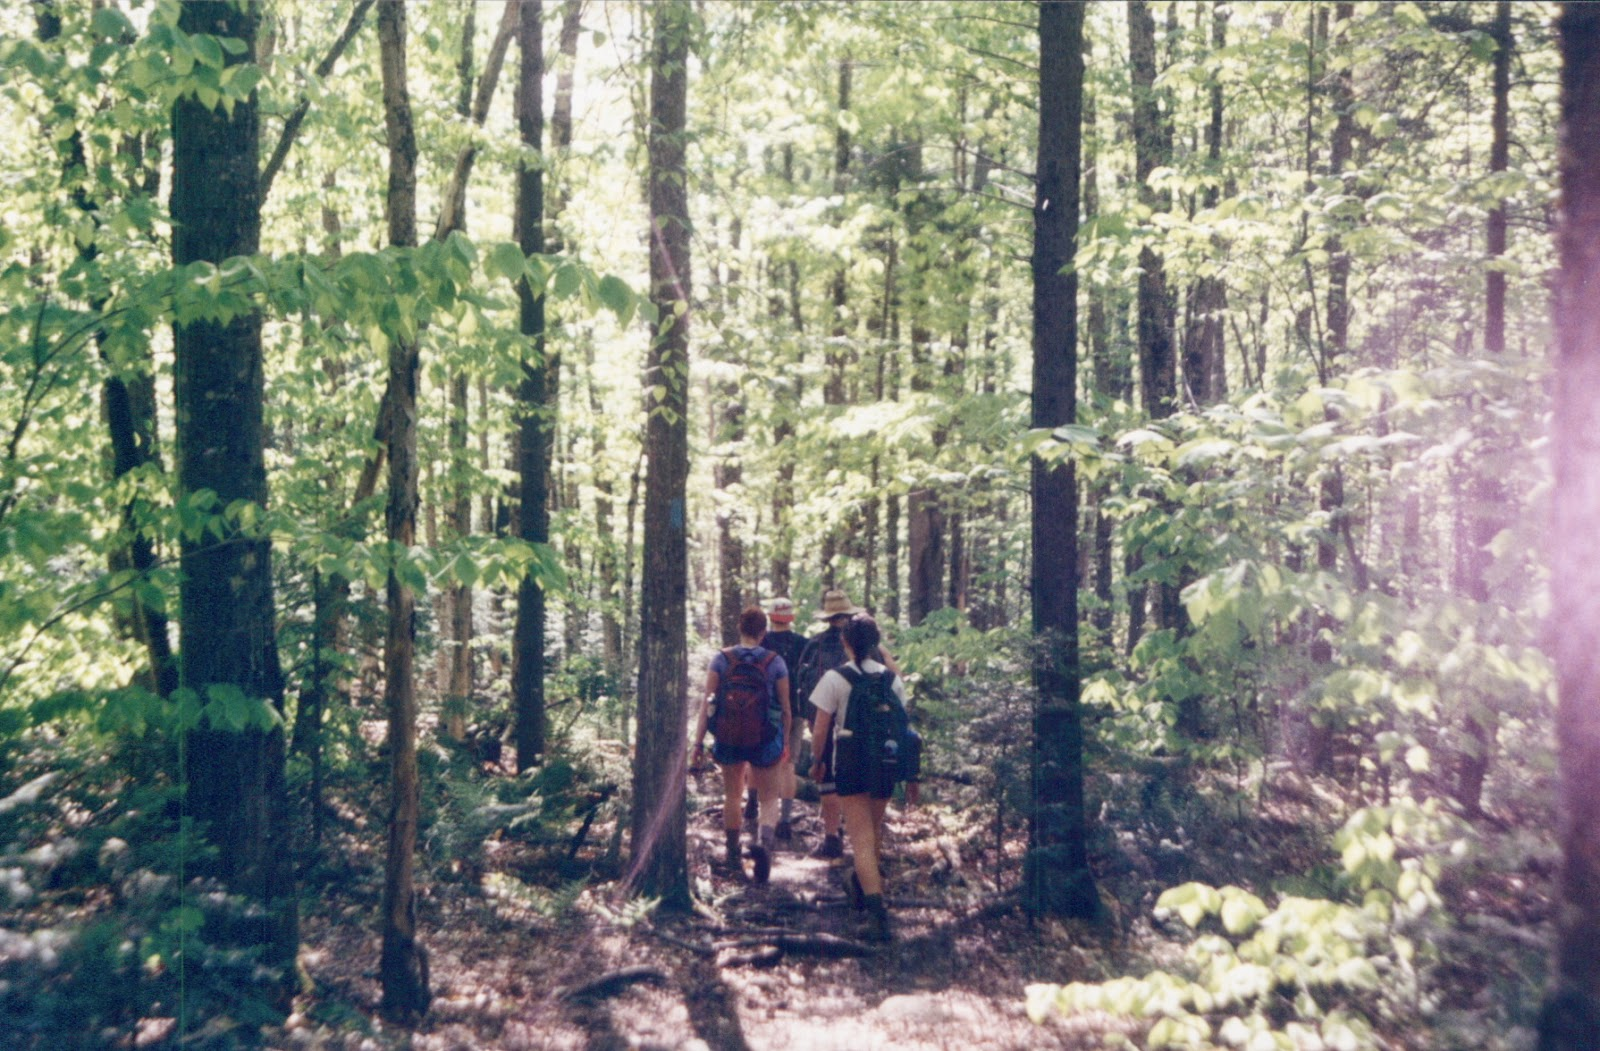 Hiking in the Maine Woods